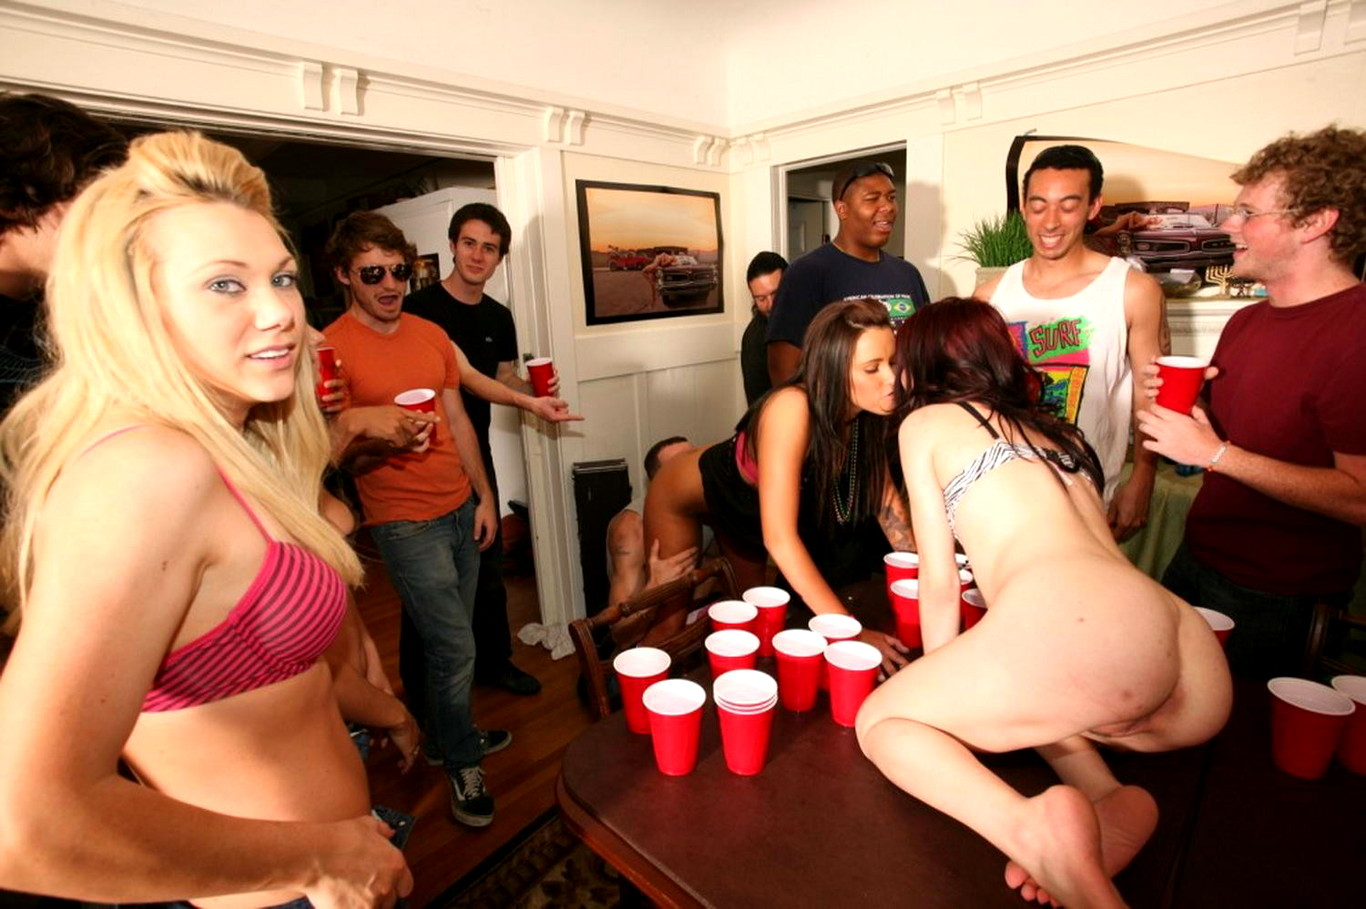 party-turns-into-orgy-very-young-pre-lola-amature-girls